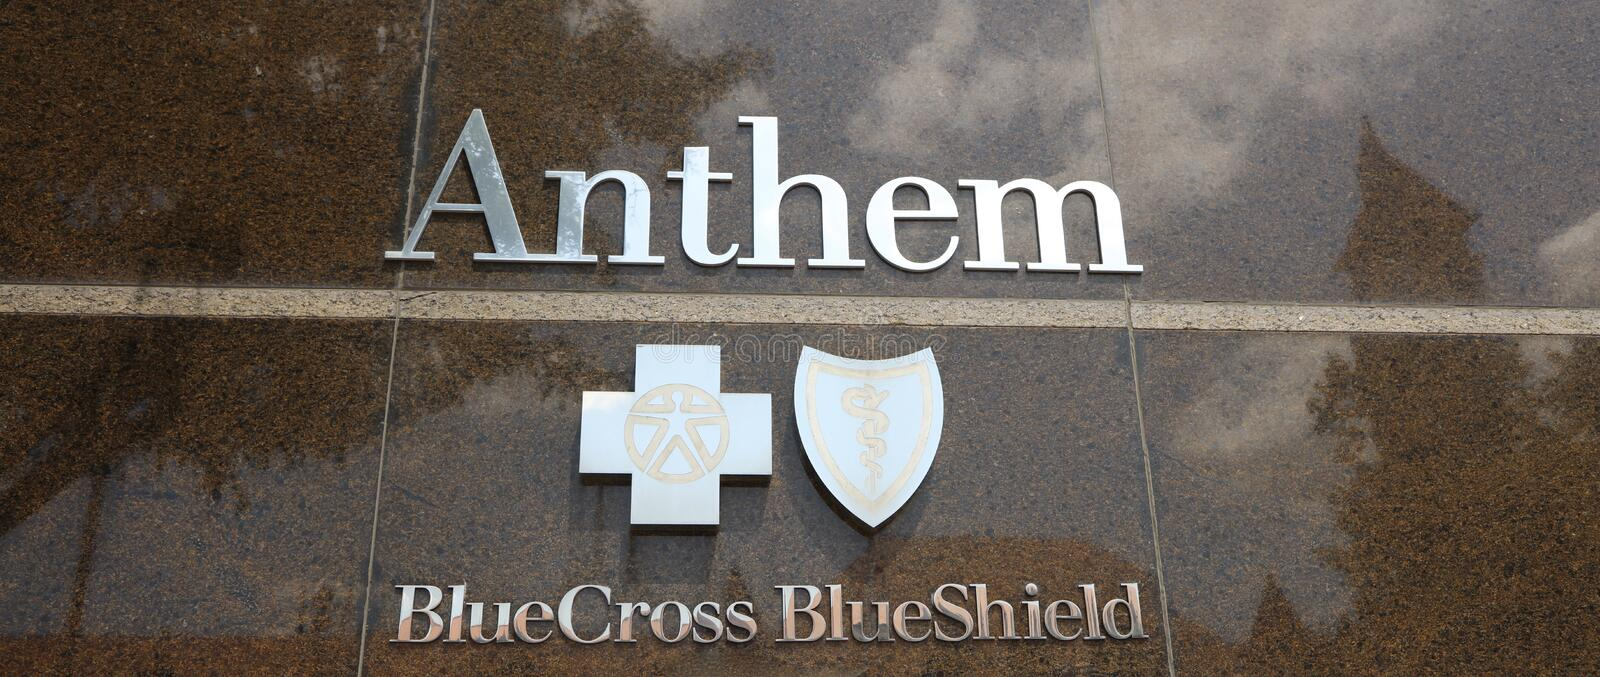 Anthem Health Blue Cross Blue Shield. Anthem Inc. is an American health insurance company founded in the 1940s, prior to 2014 known as WellPoint, Inc. It is the royalty free stock photography